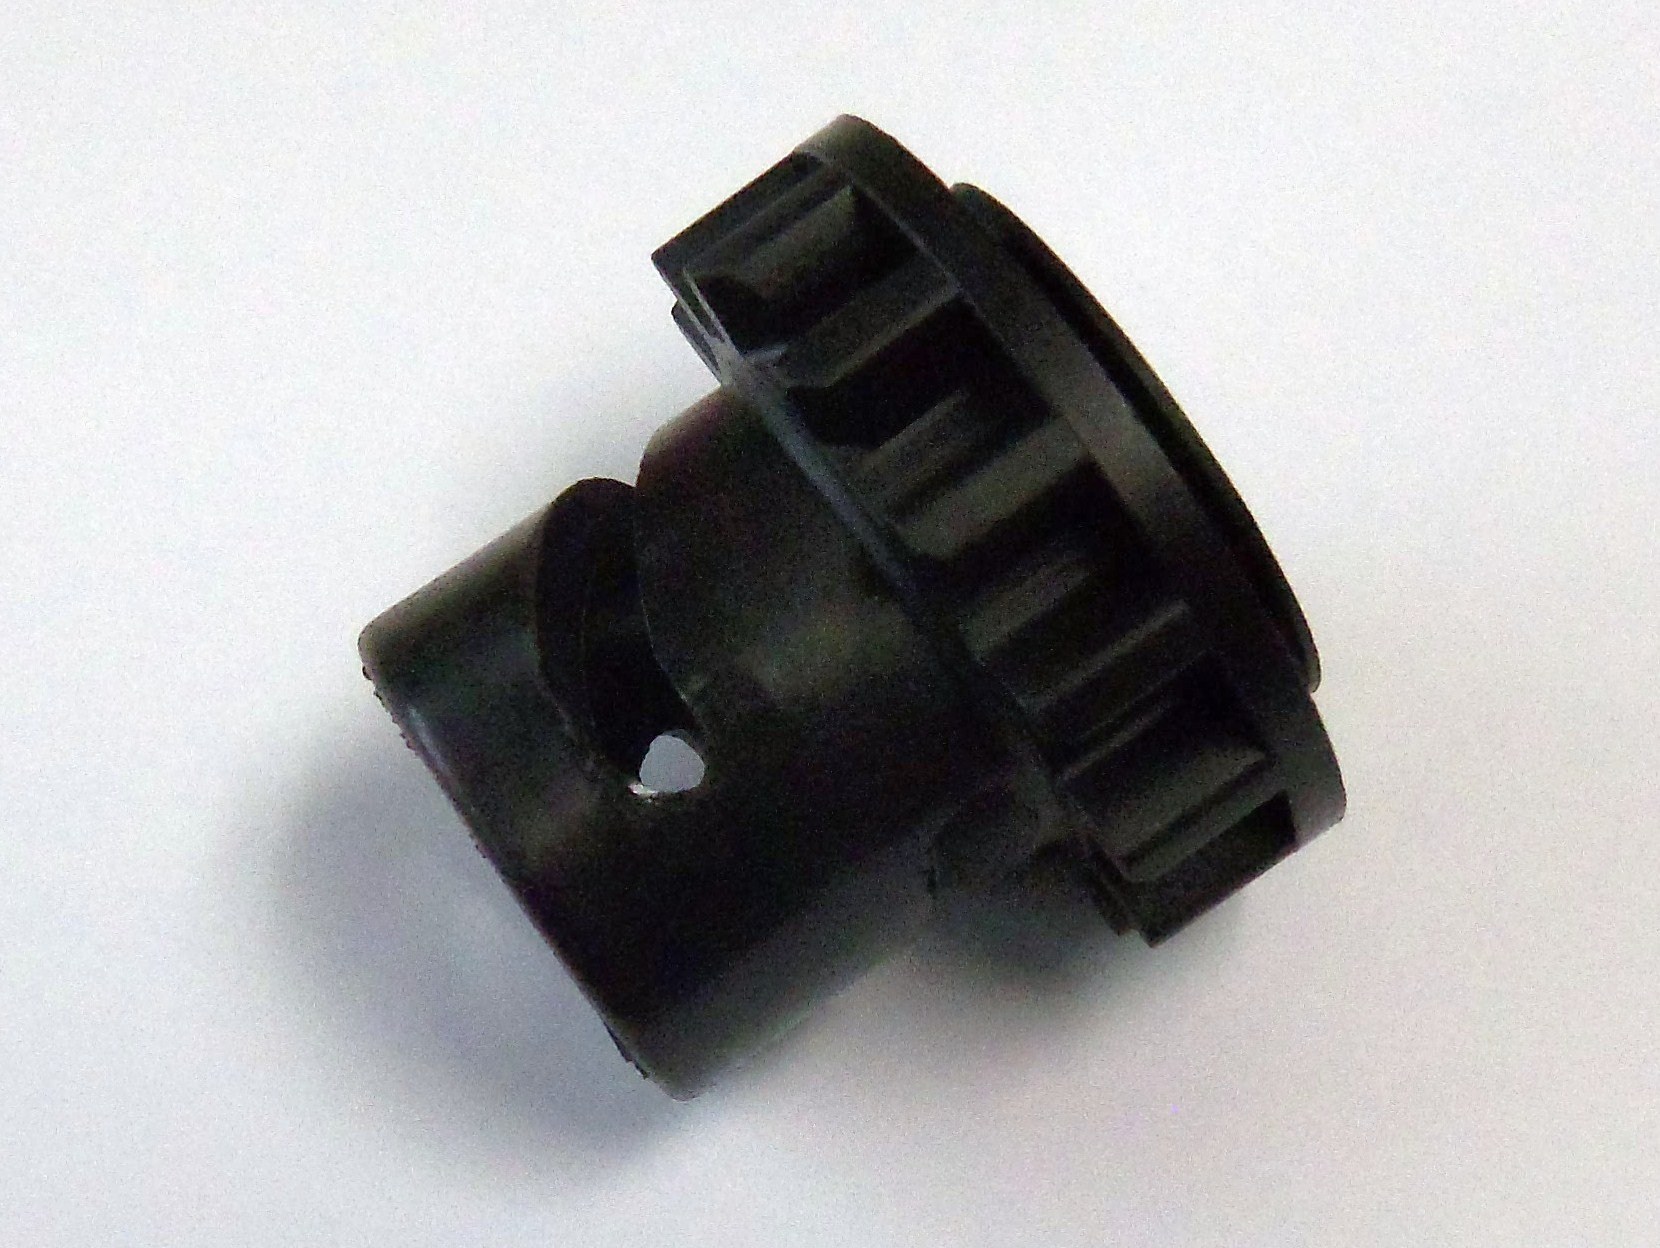 Pinion Gear for OMC Johnson Evinrude 6, 7.5 and 8 hp - 1972-1990 - See Details - OMC 311189, 318447